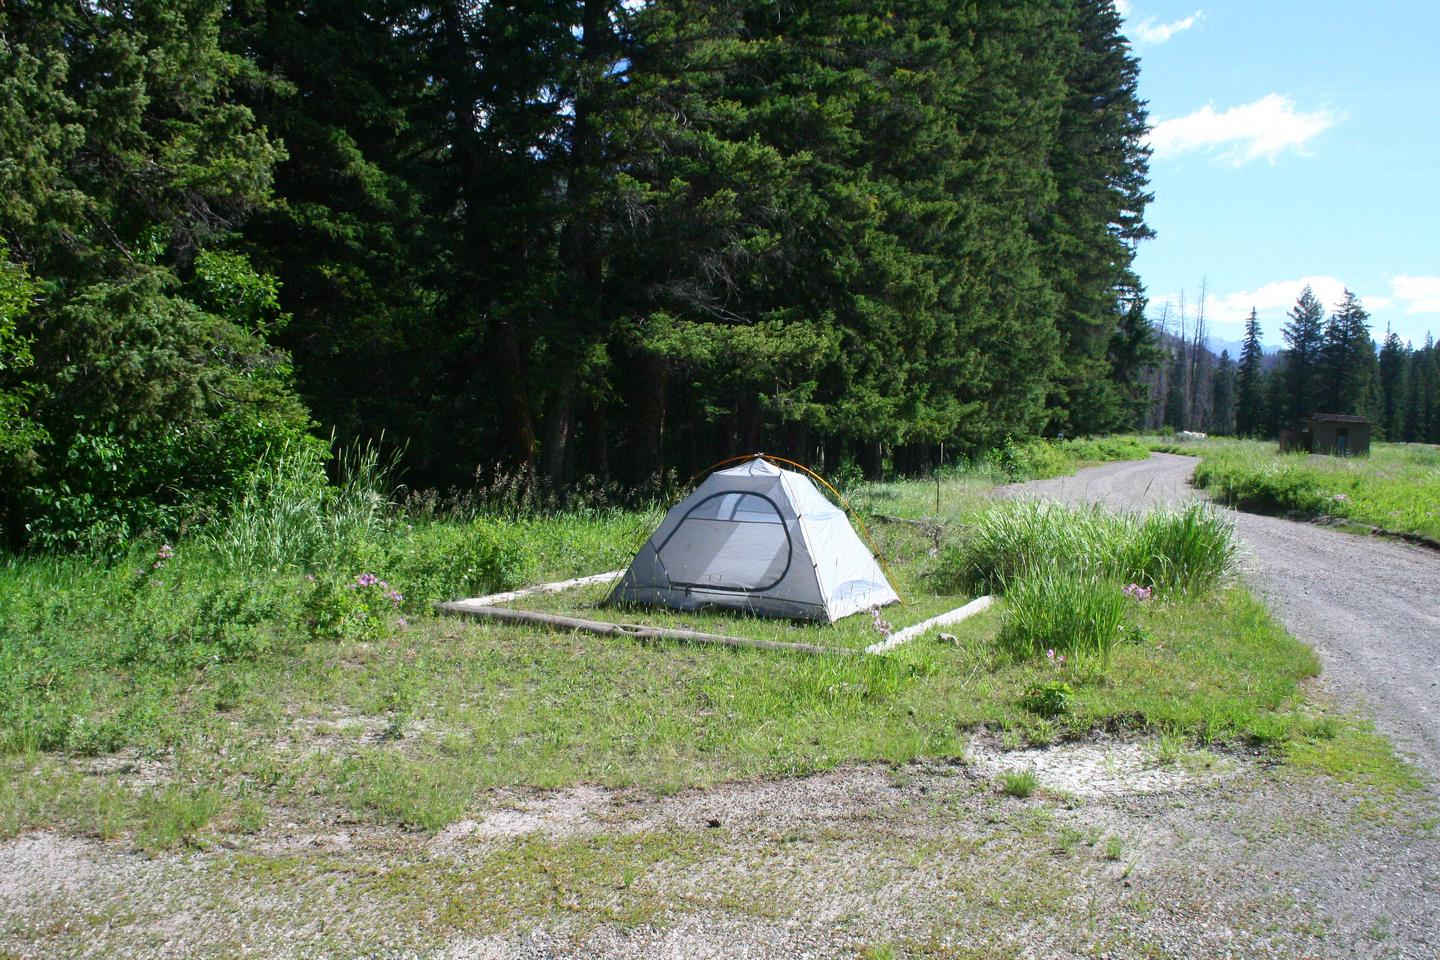 Slough Creek Campground site #9